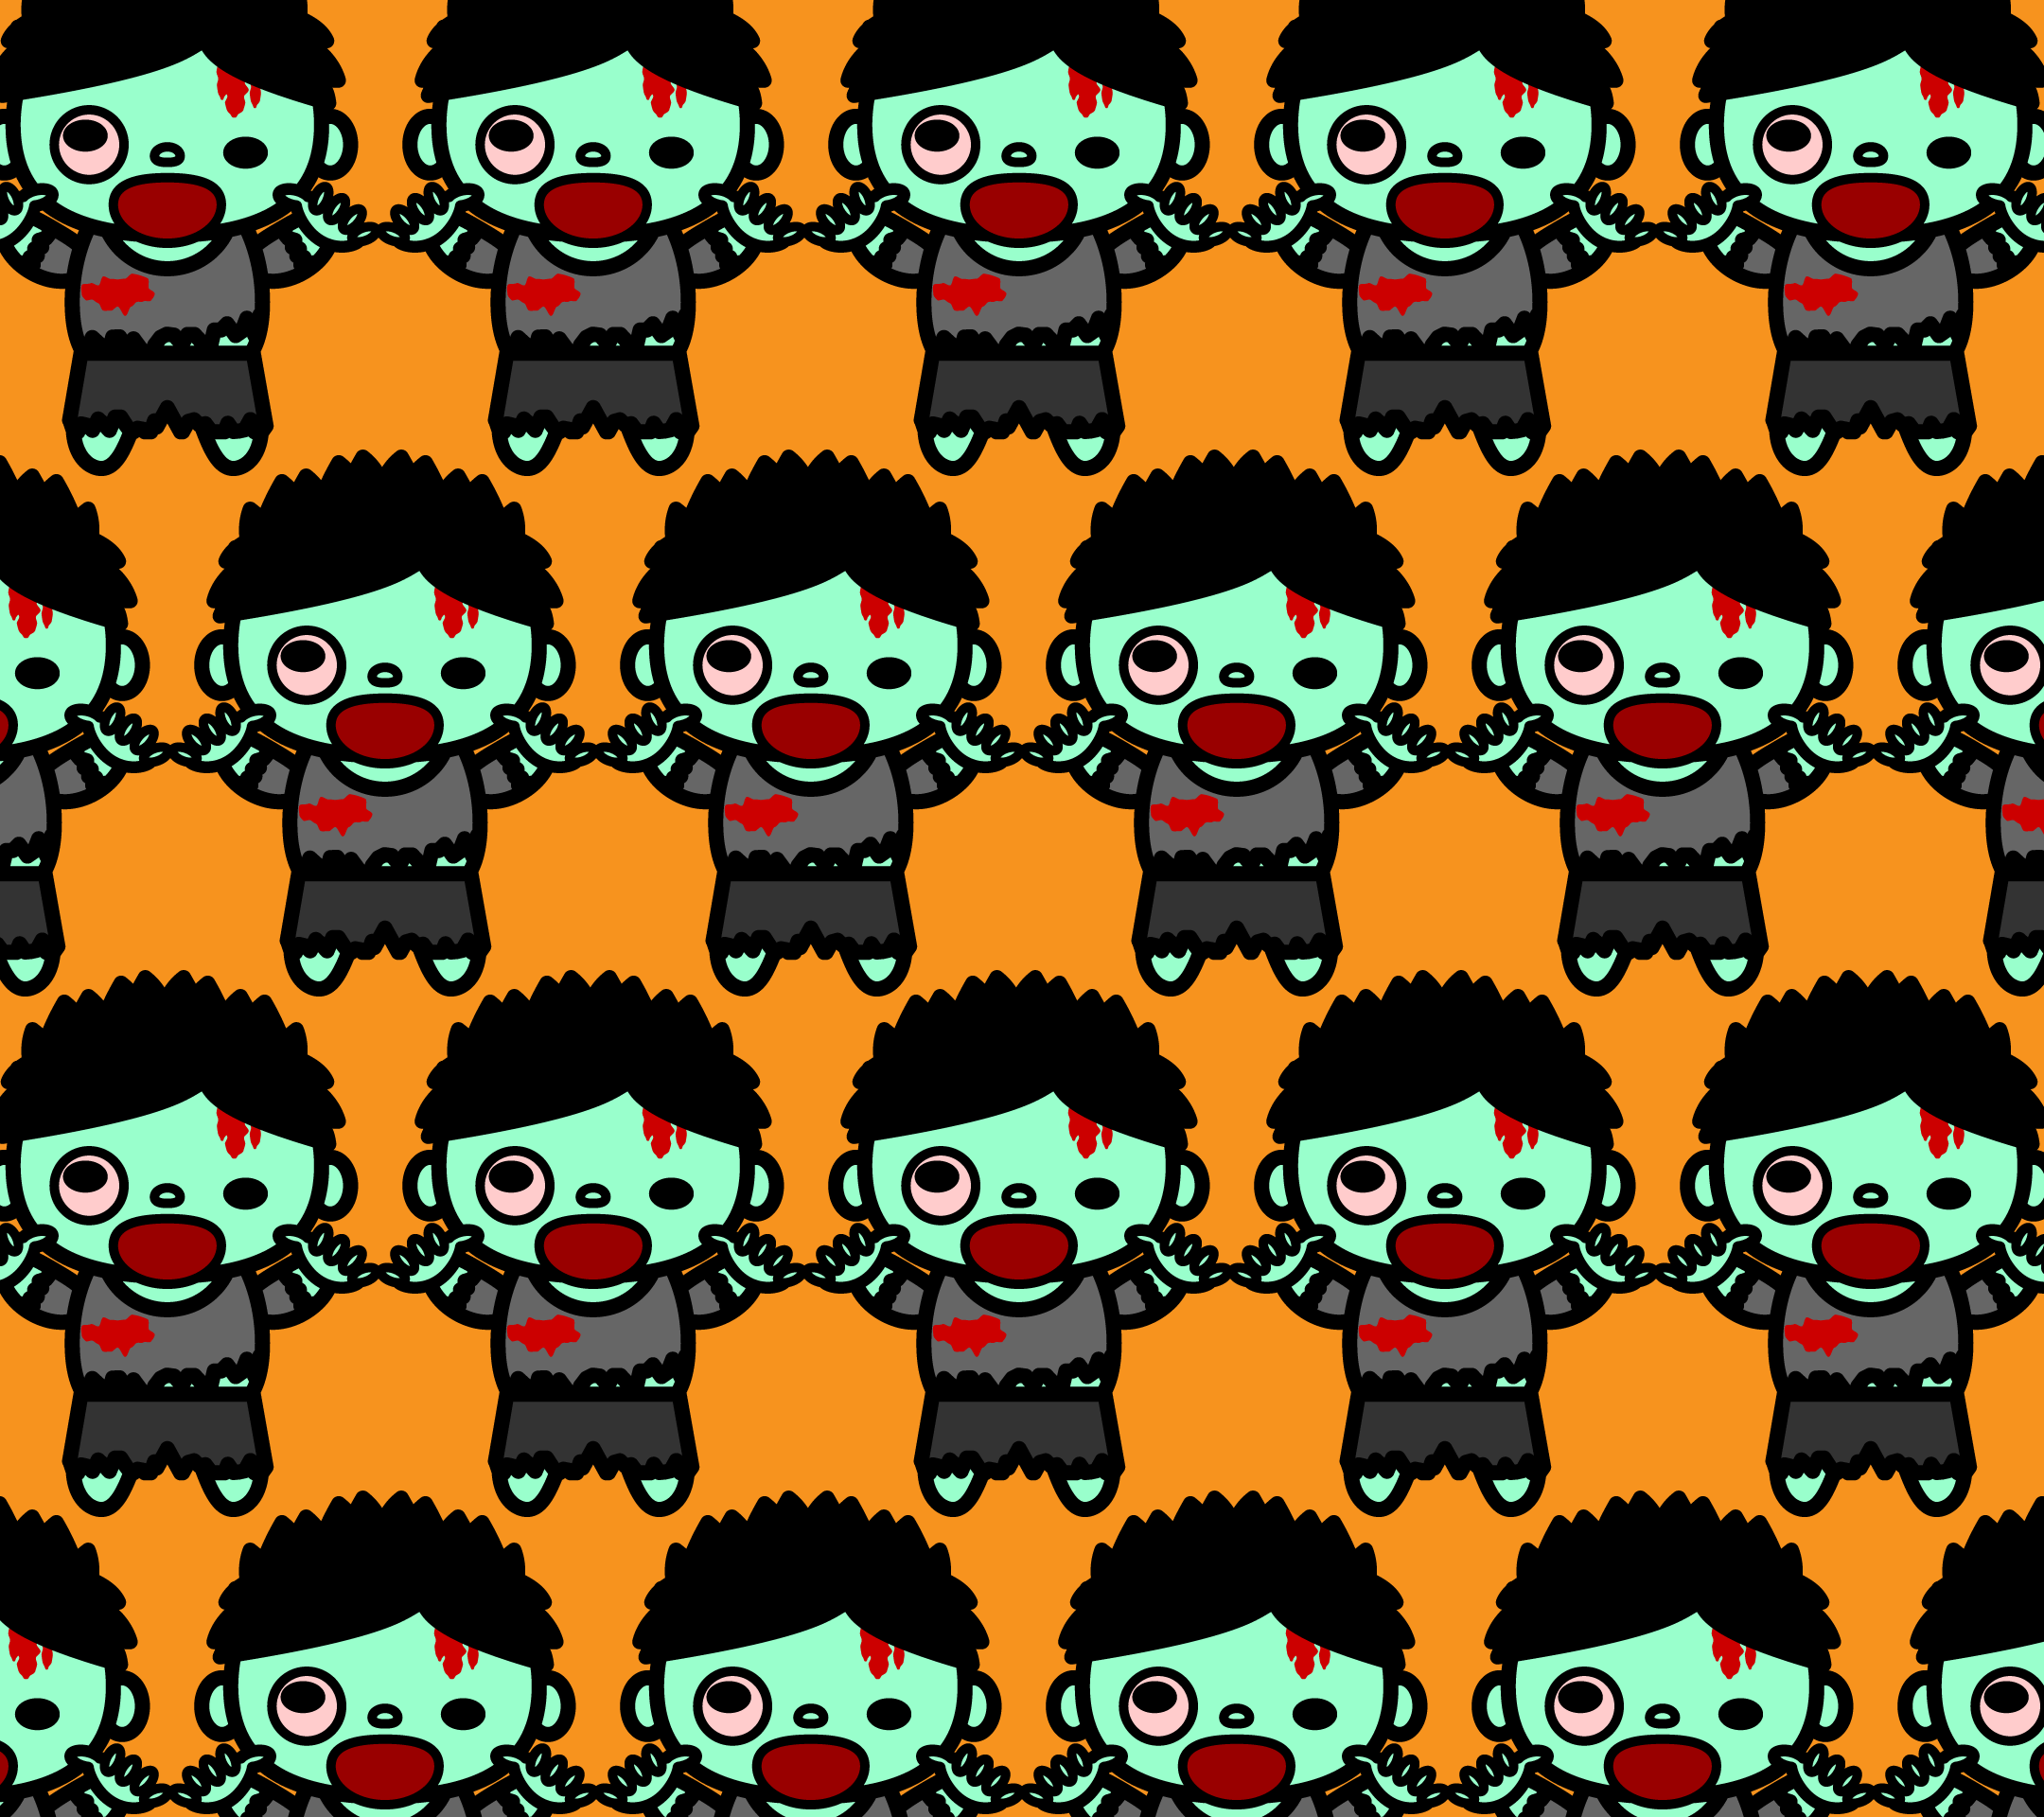 wallpaper2_zombie-man-fill-orange-android